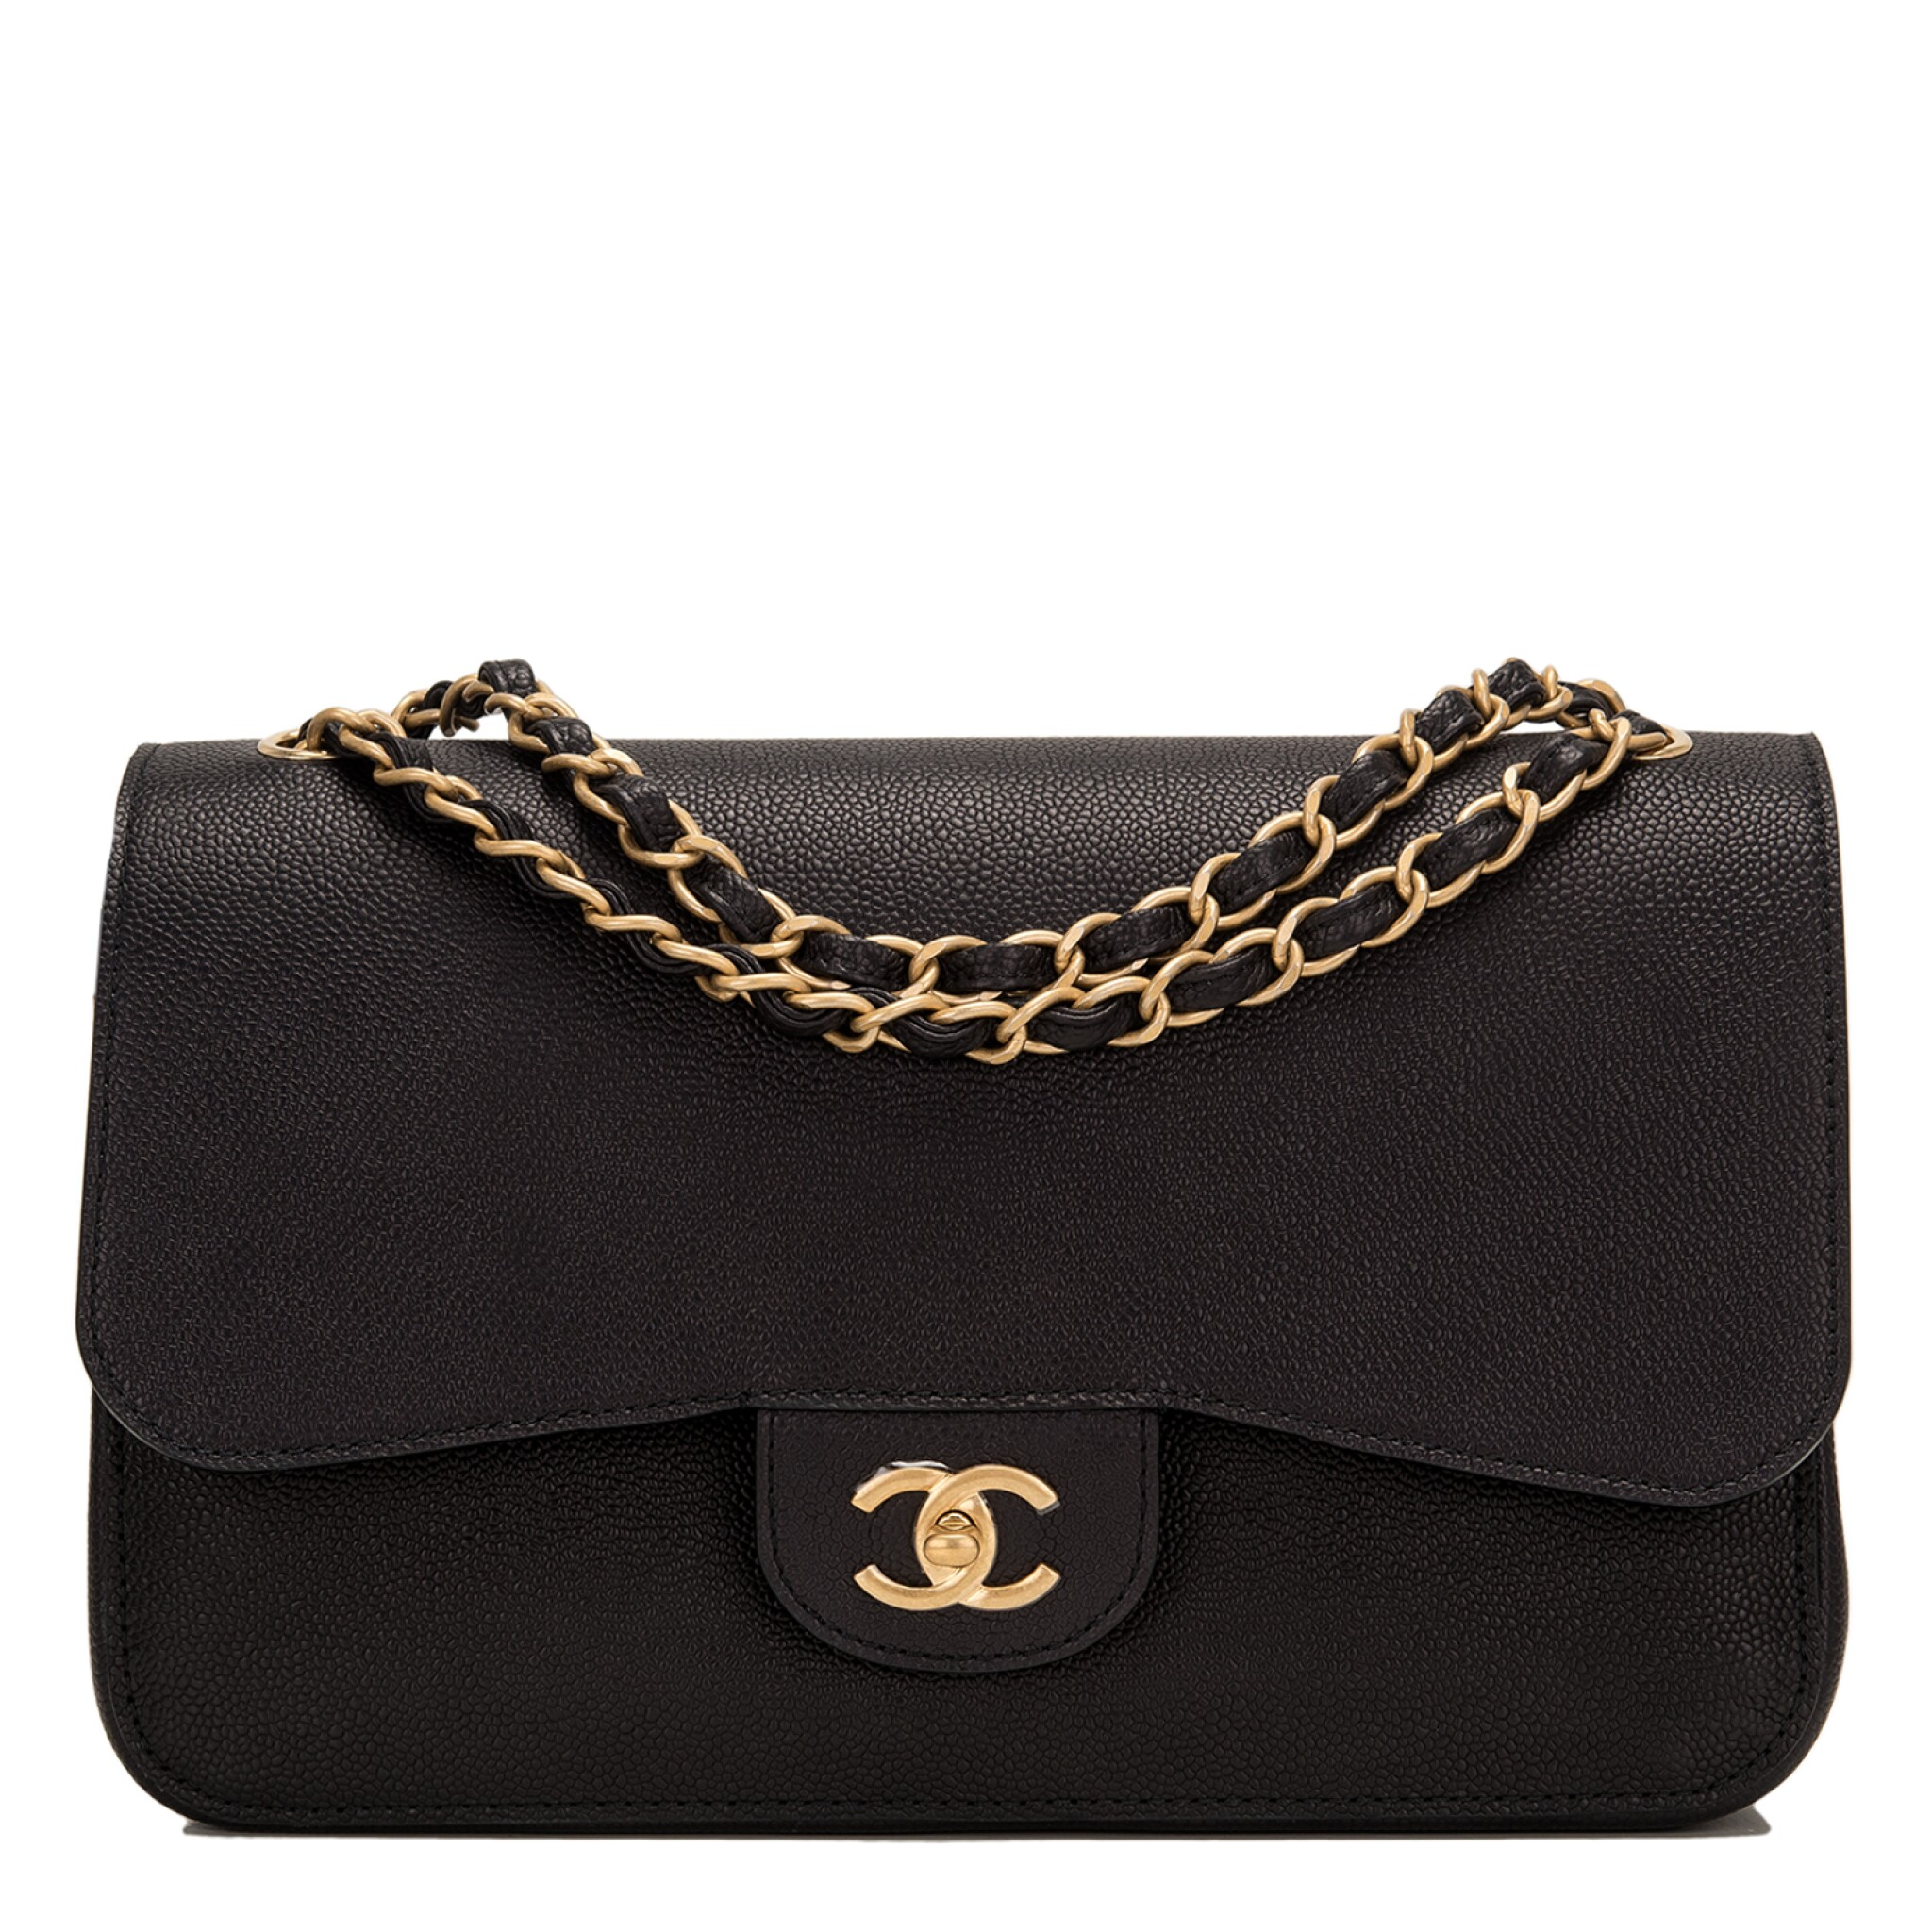 """View full screen - View 1 of Lot 62.  Chanel """"Pure"""" Jumbo Double Flap Bag of Black Caviar Leather with Gold Tone Hardware."""